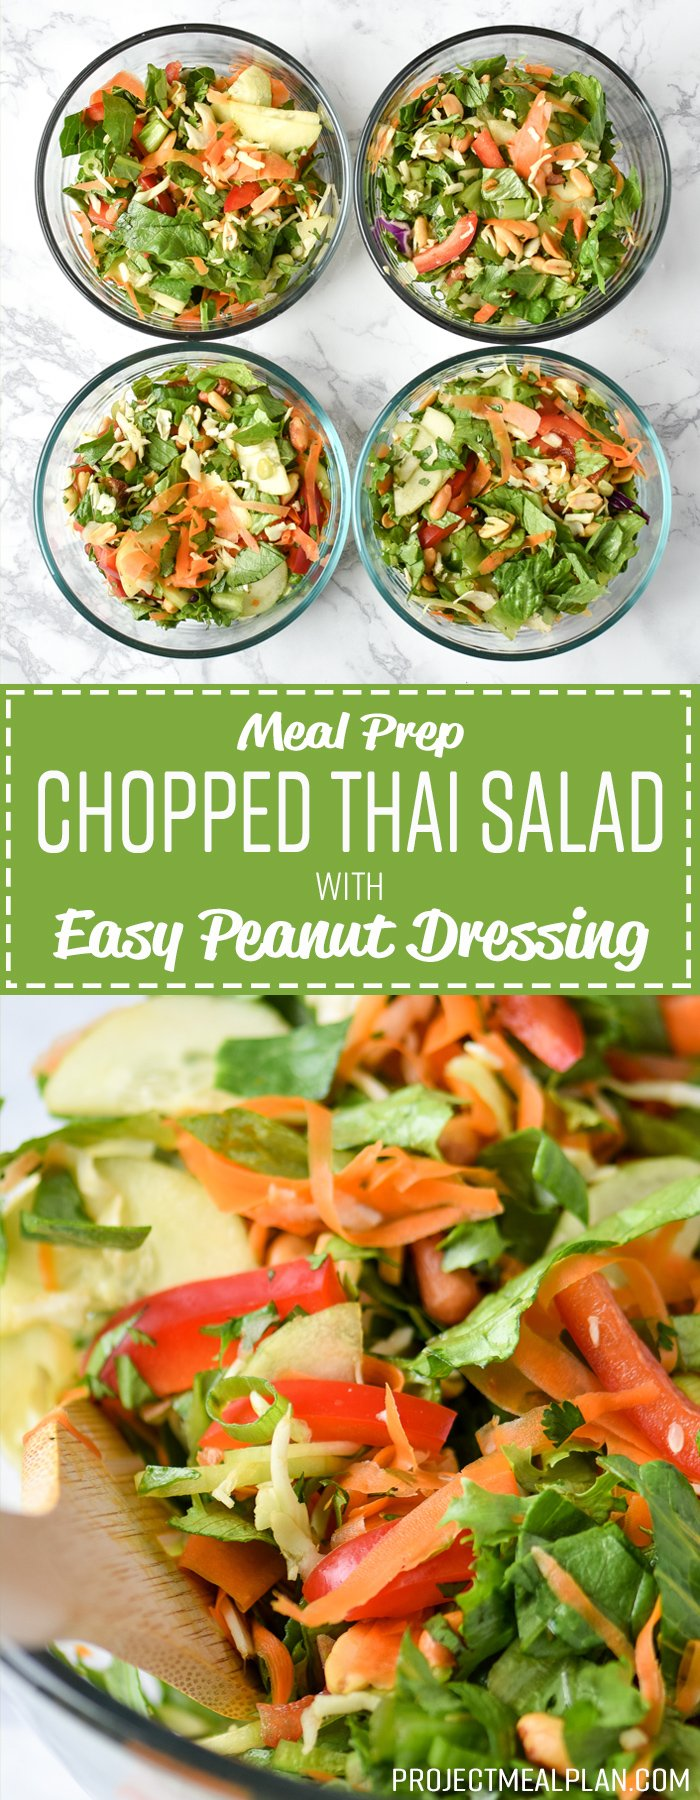 Meal Prep Chopped Thai Salad with Easy Peanut Dressing - Simple Thai-inspired chopped salad with a creamy peanut dressing recipe - Perfect for meal prep! - ProjectMealPlan.com